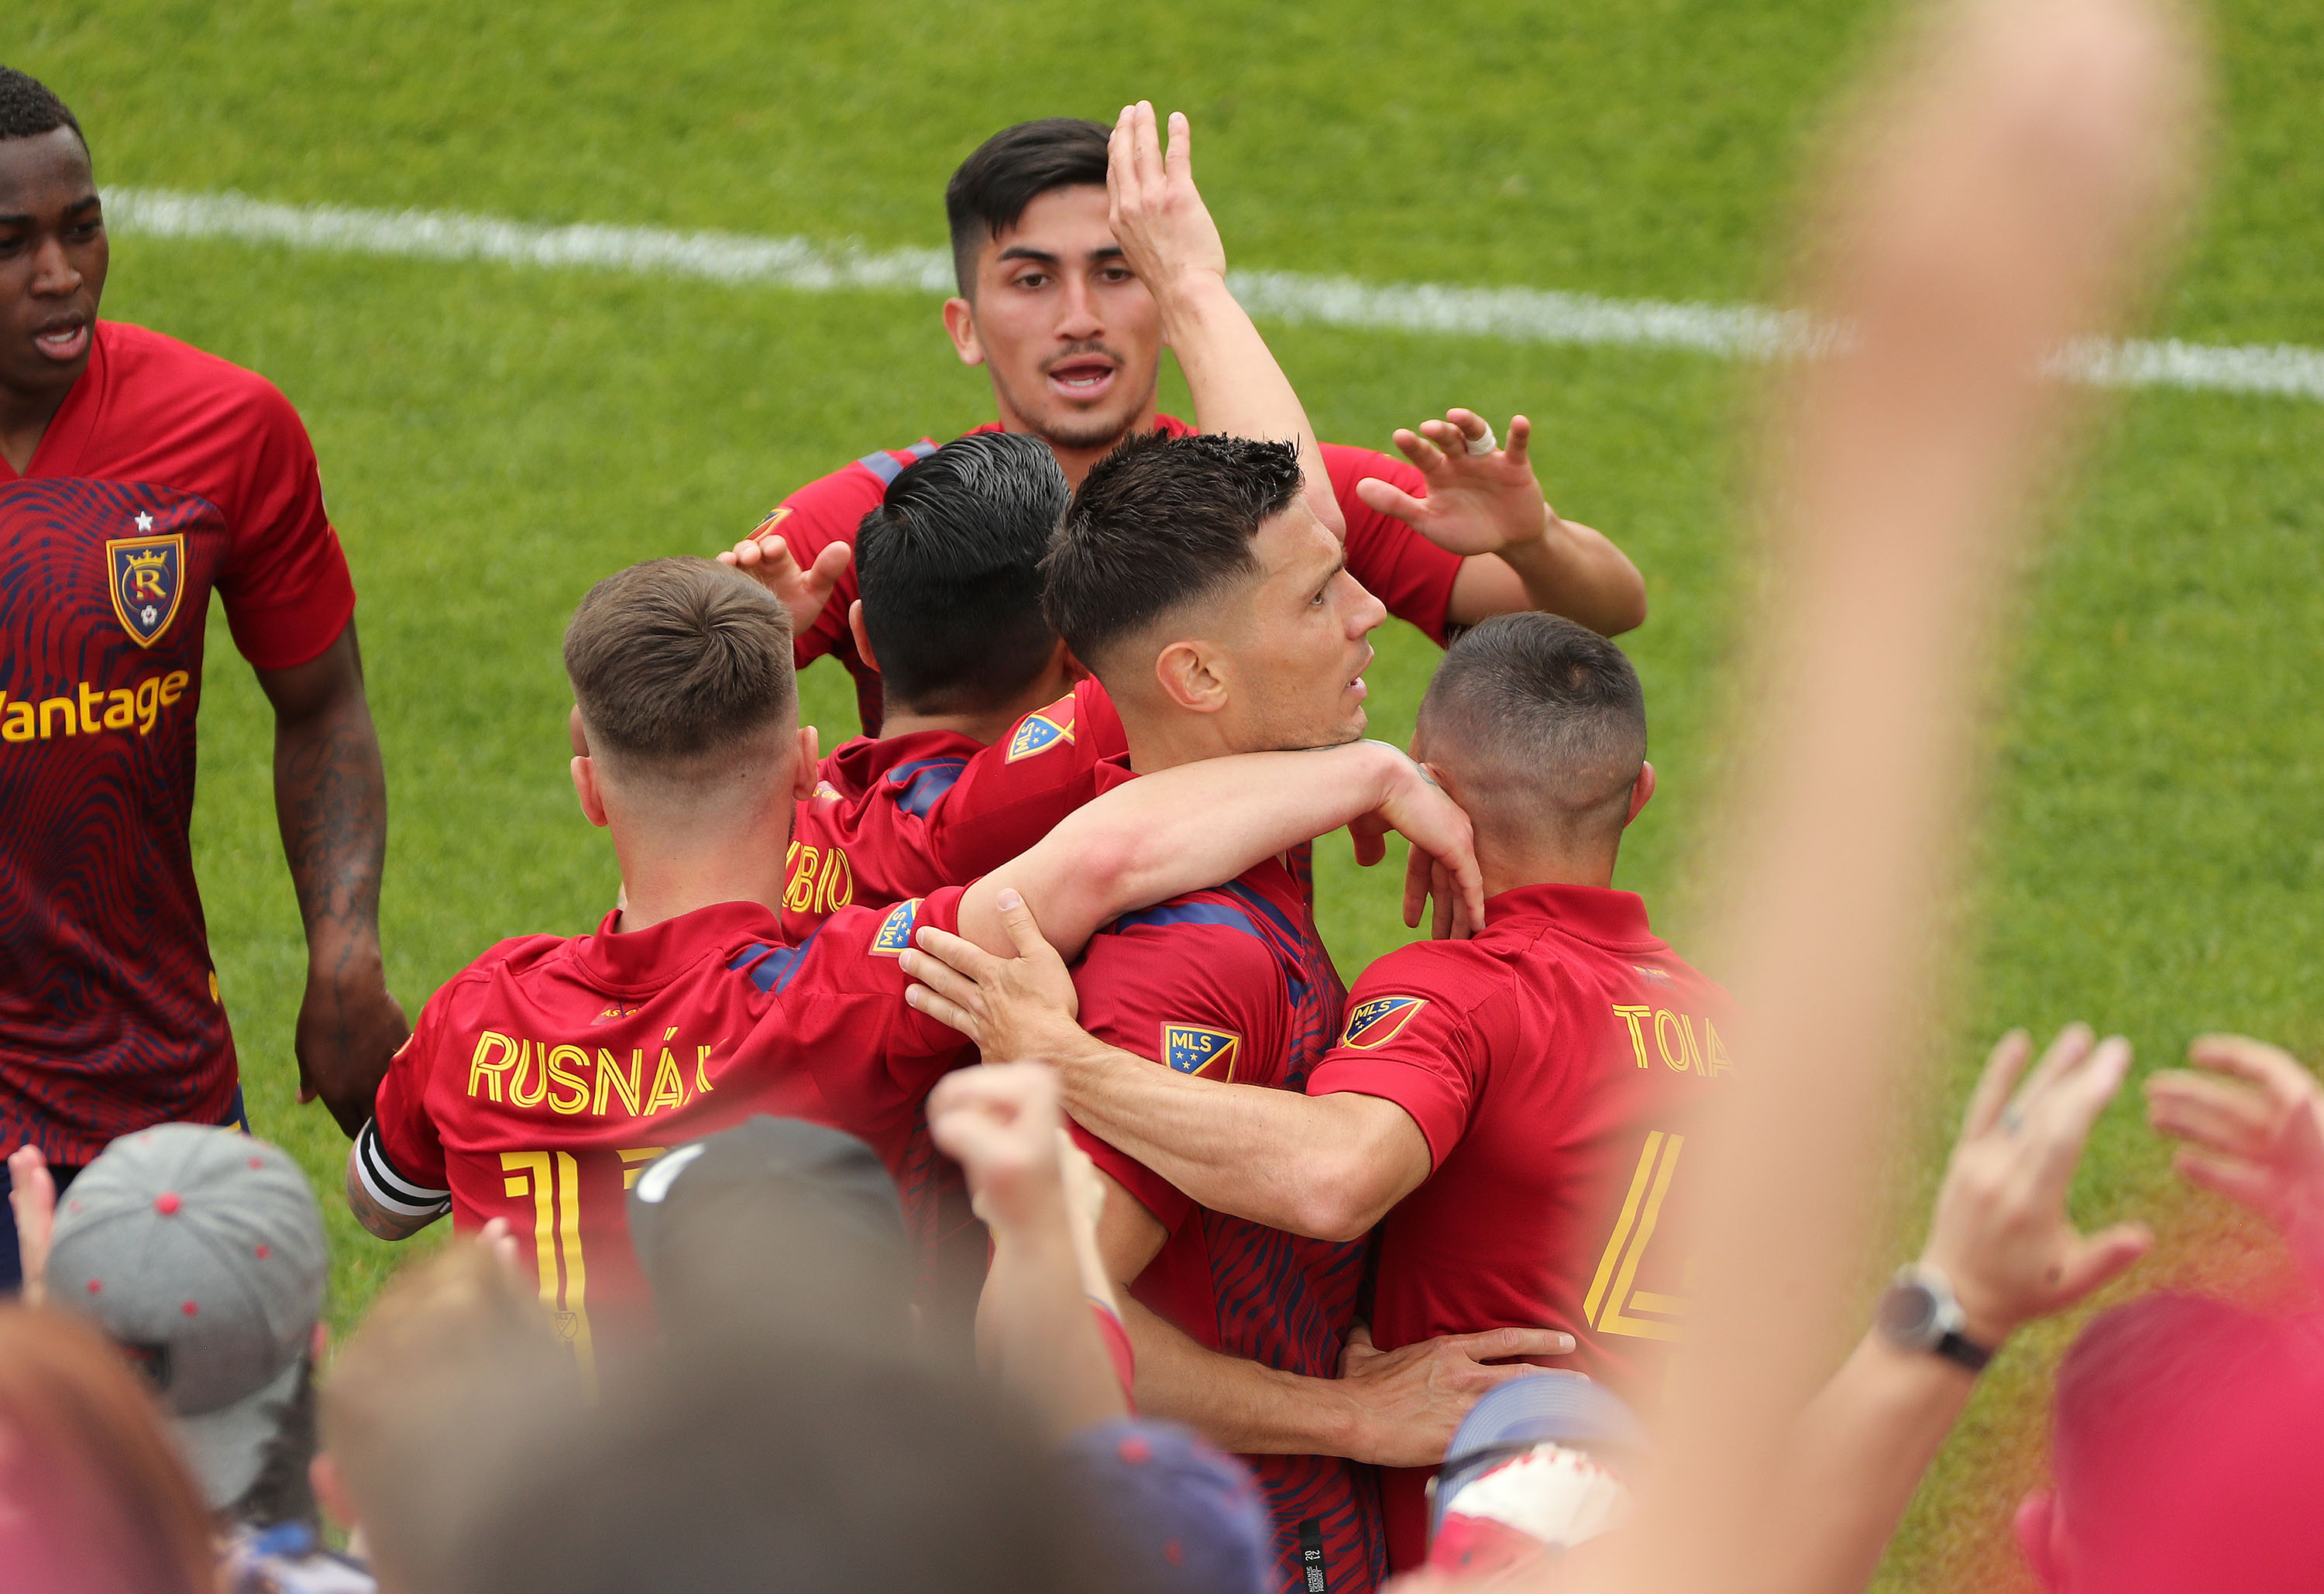 Damir Kreliach scored RSL's lone goal in a 1-1 draw with Minnesota United on Saturday, May 29, 2021.